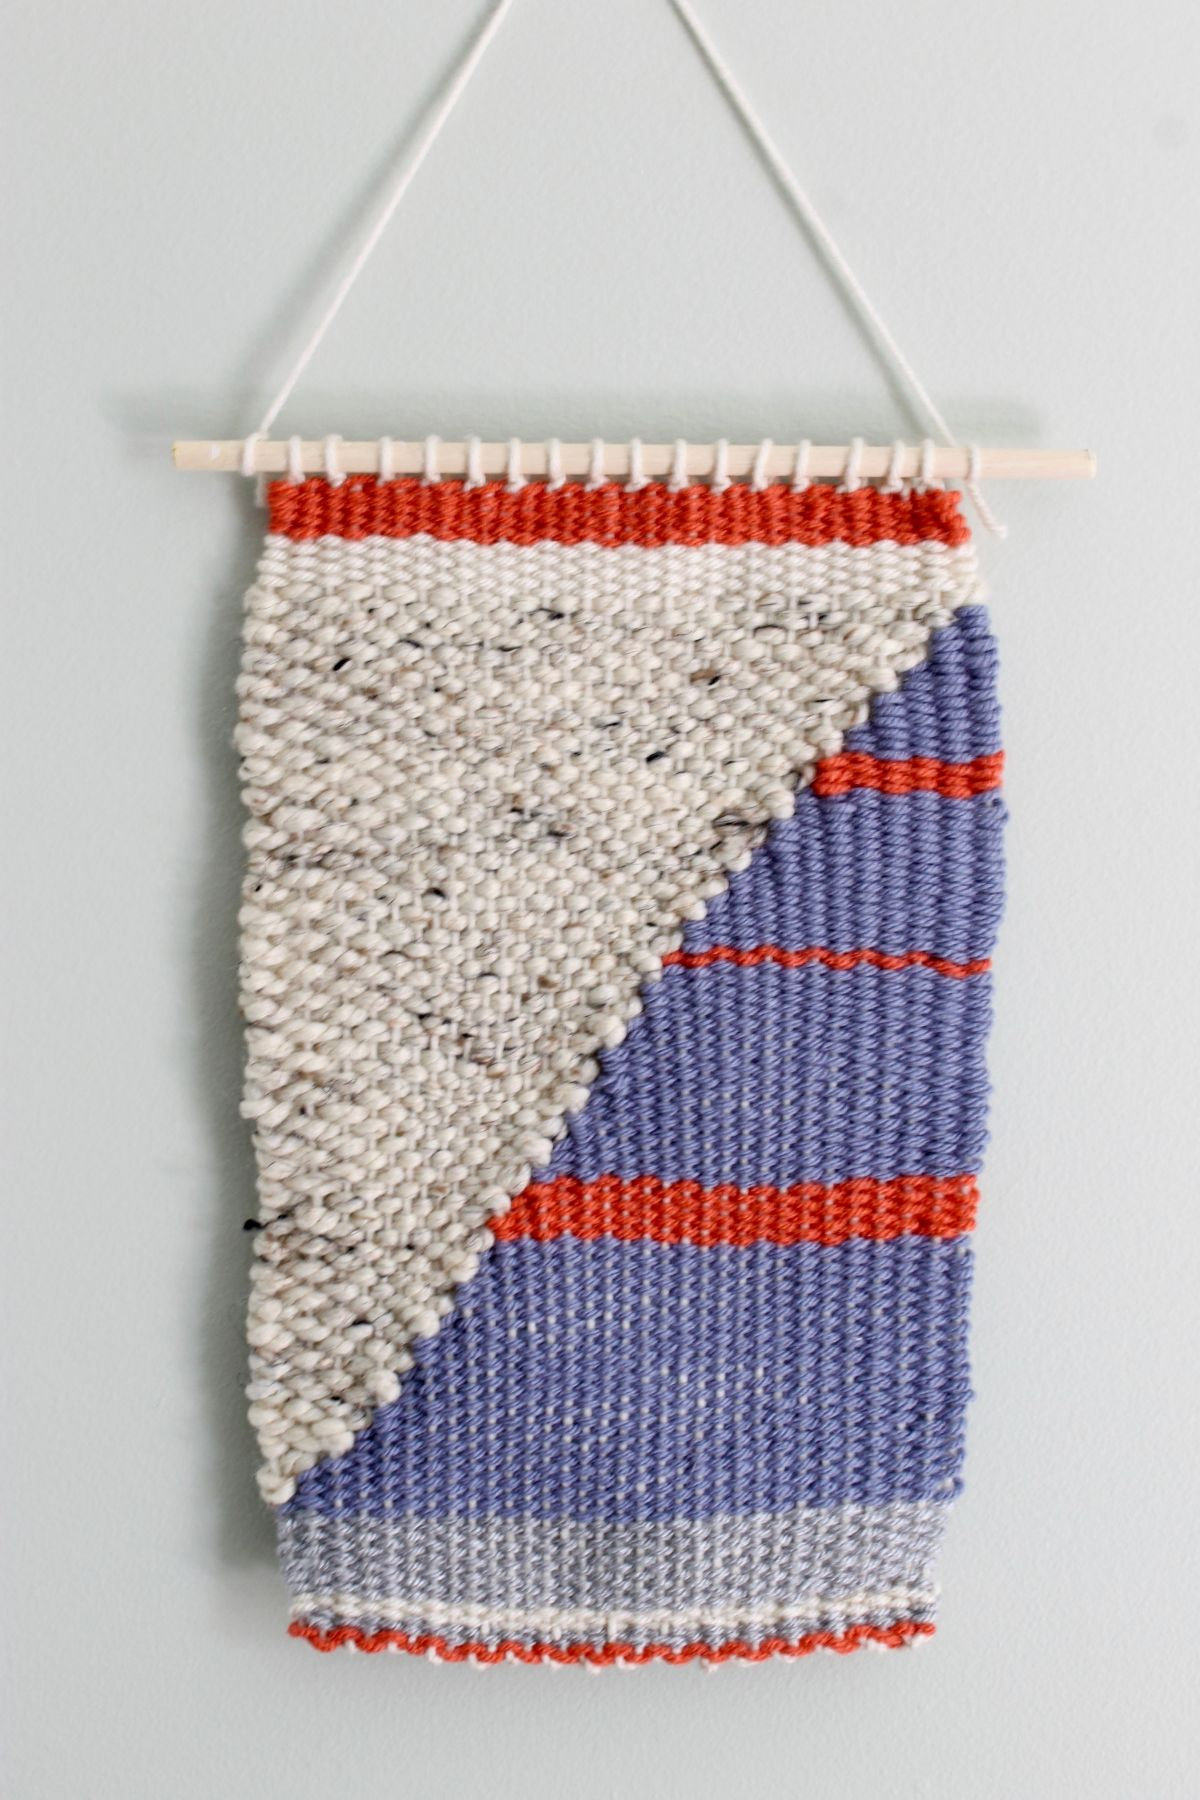 Craft a Loom and Woven Wall Hanging